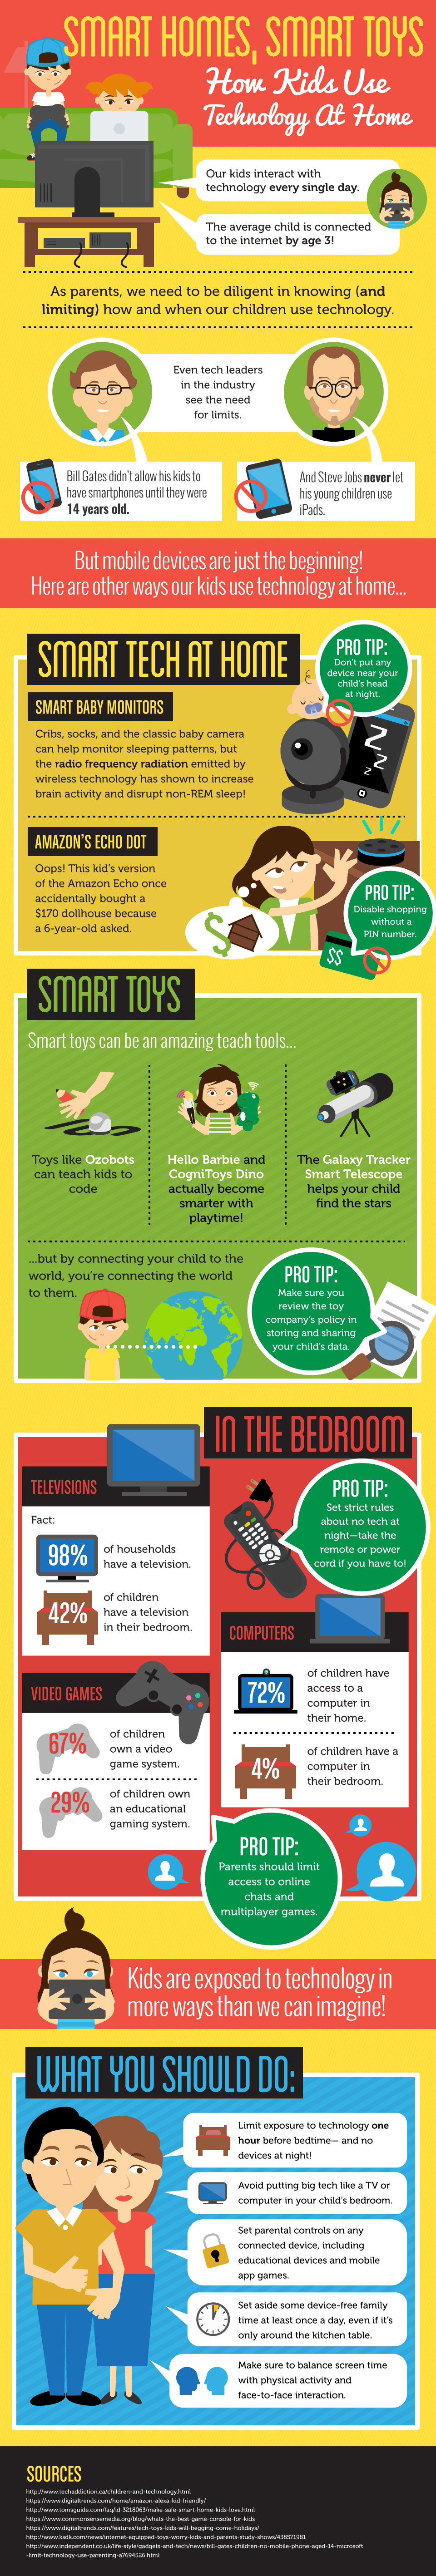 Smart Home Smart Toys Infographic